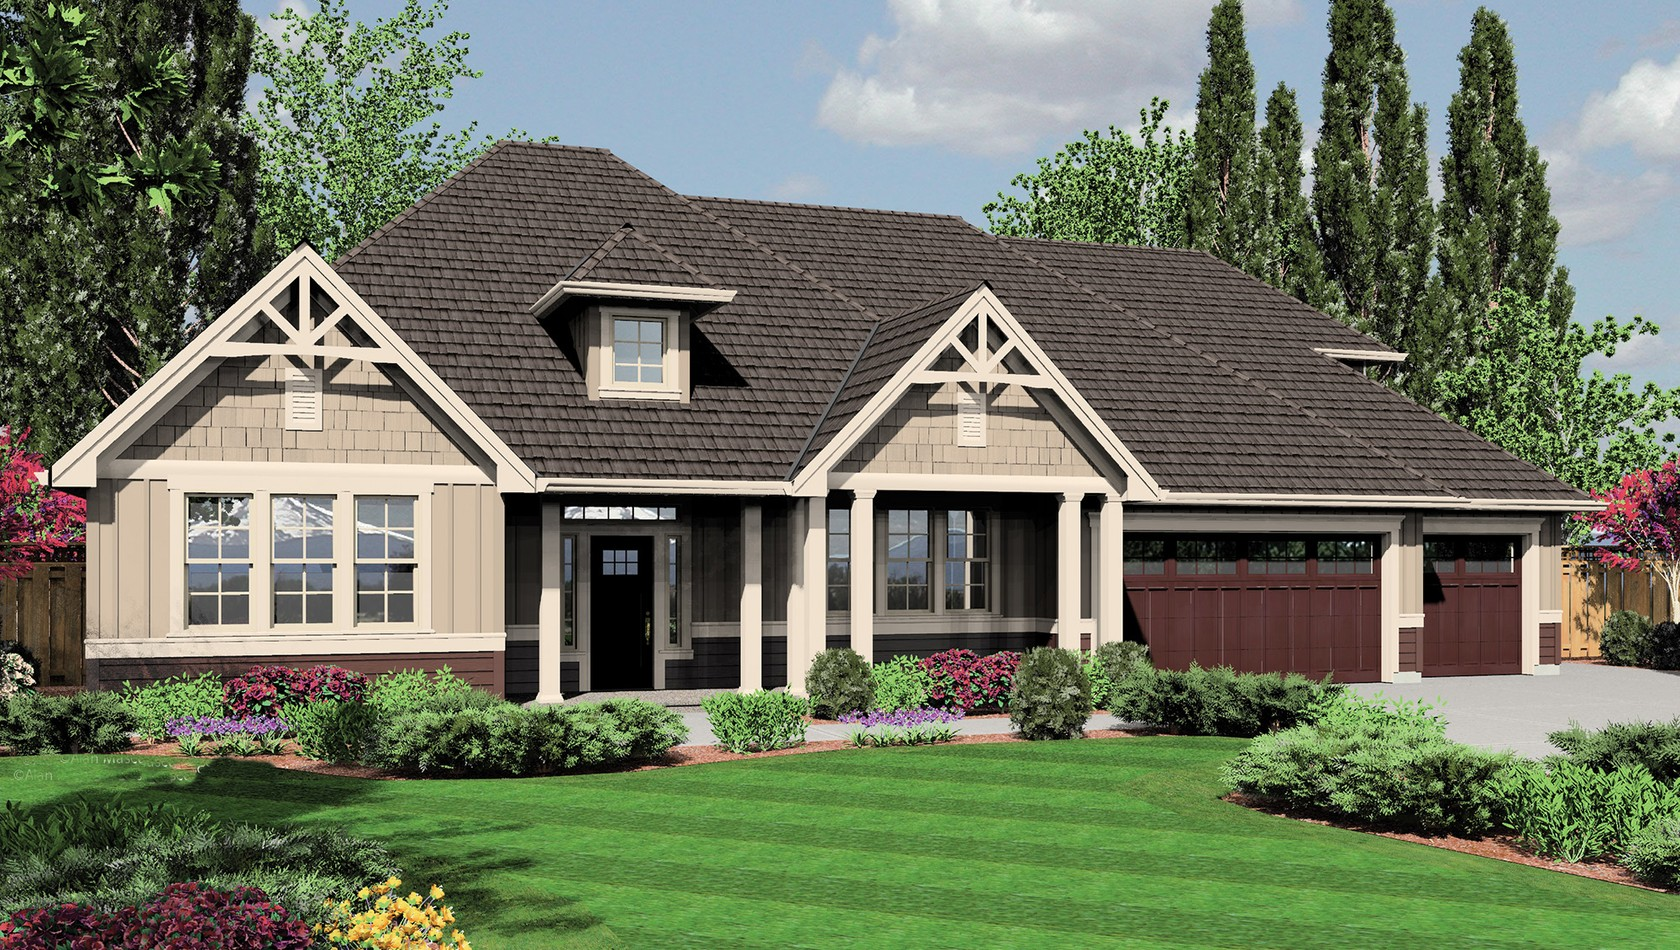 Main image for house plan B22158A: The Jasper